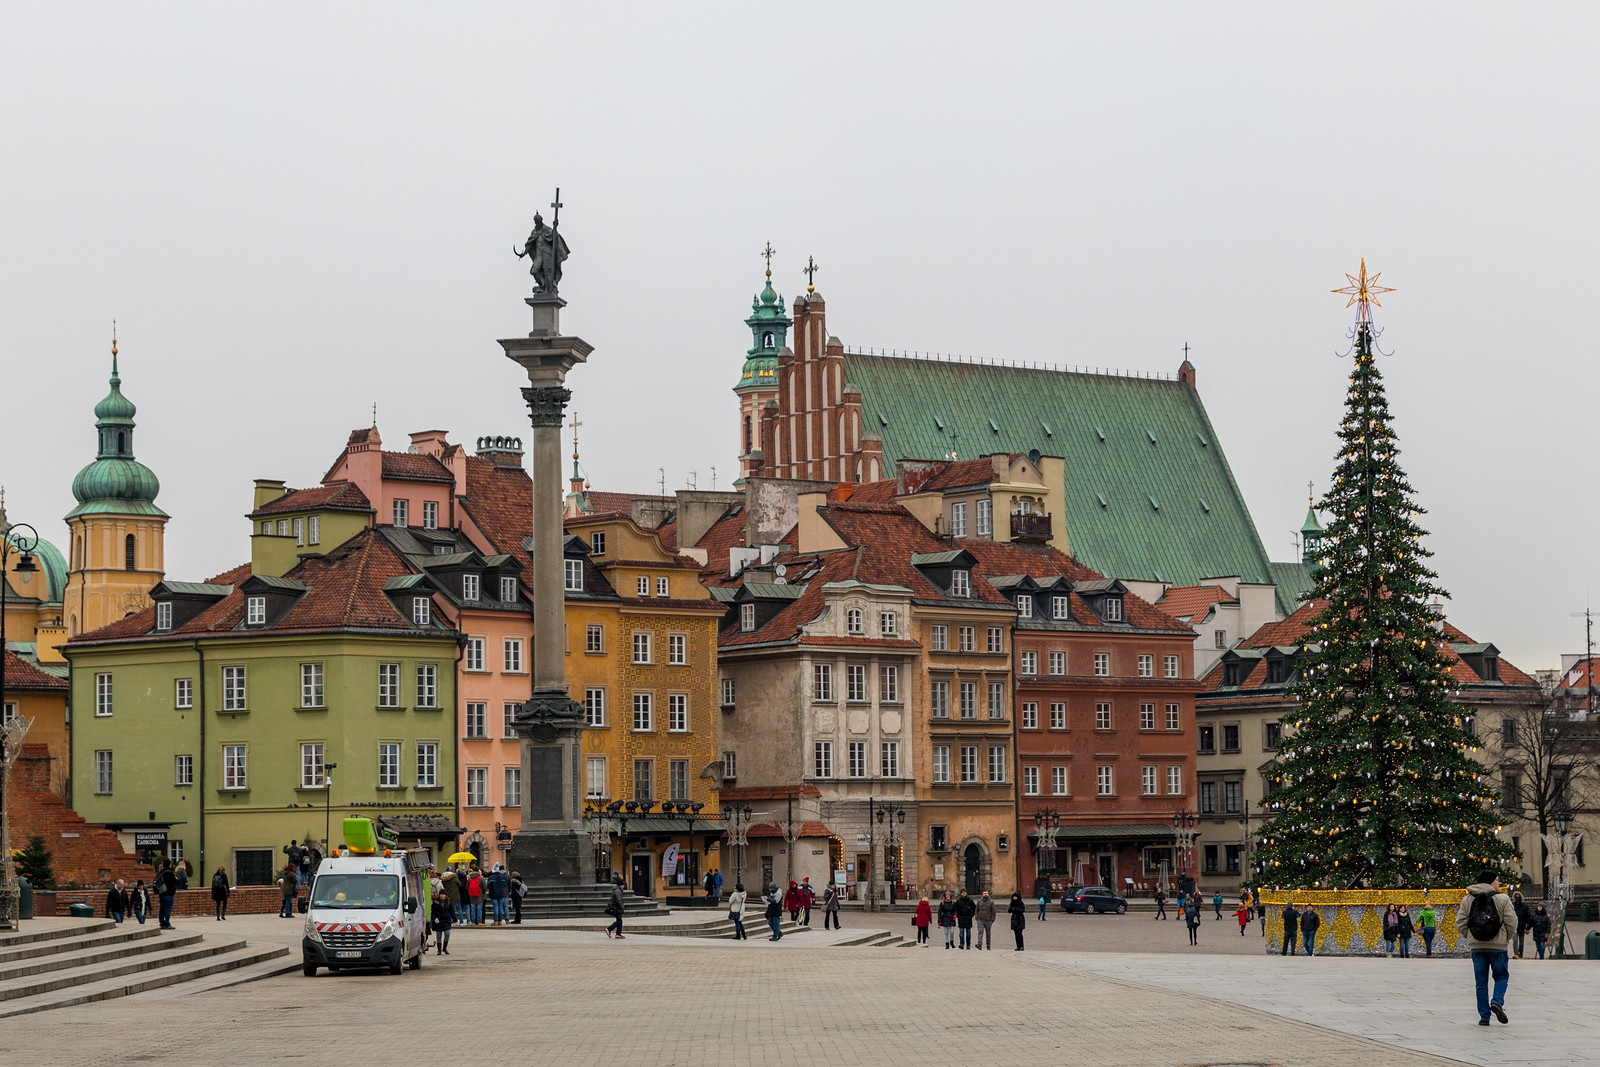 IMG_2028 - Warsaw Old Town